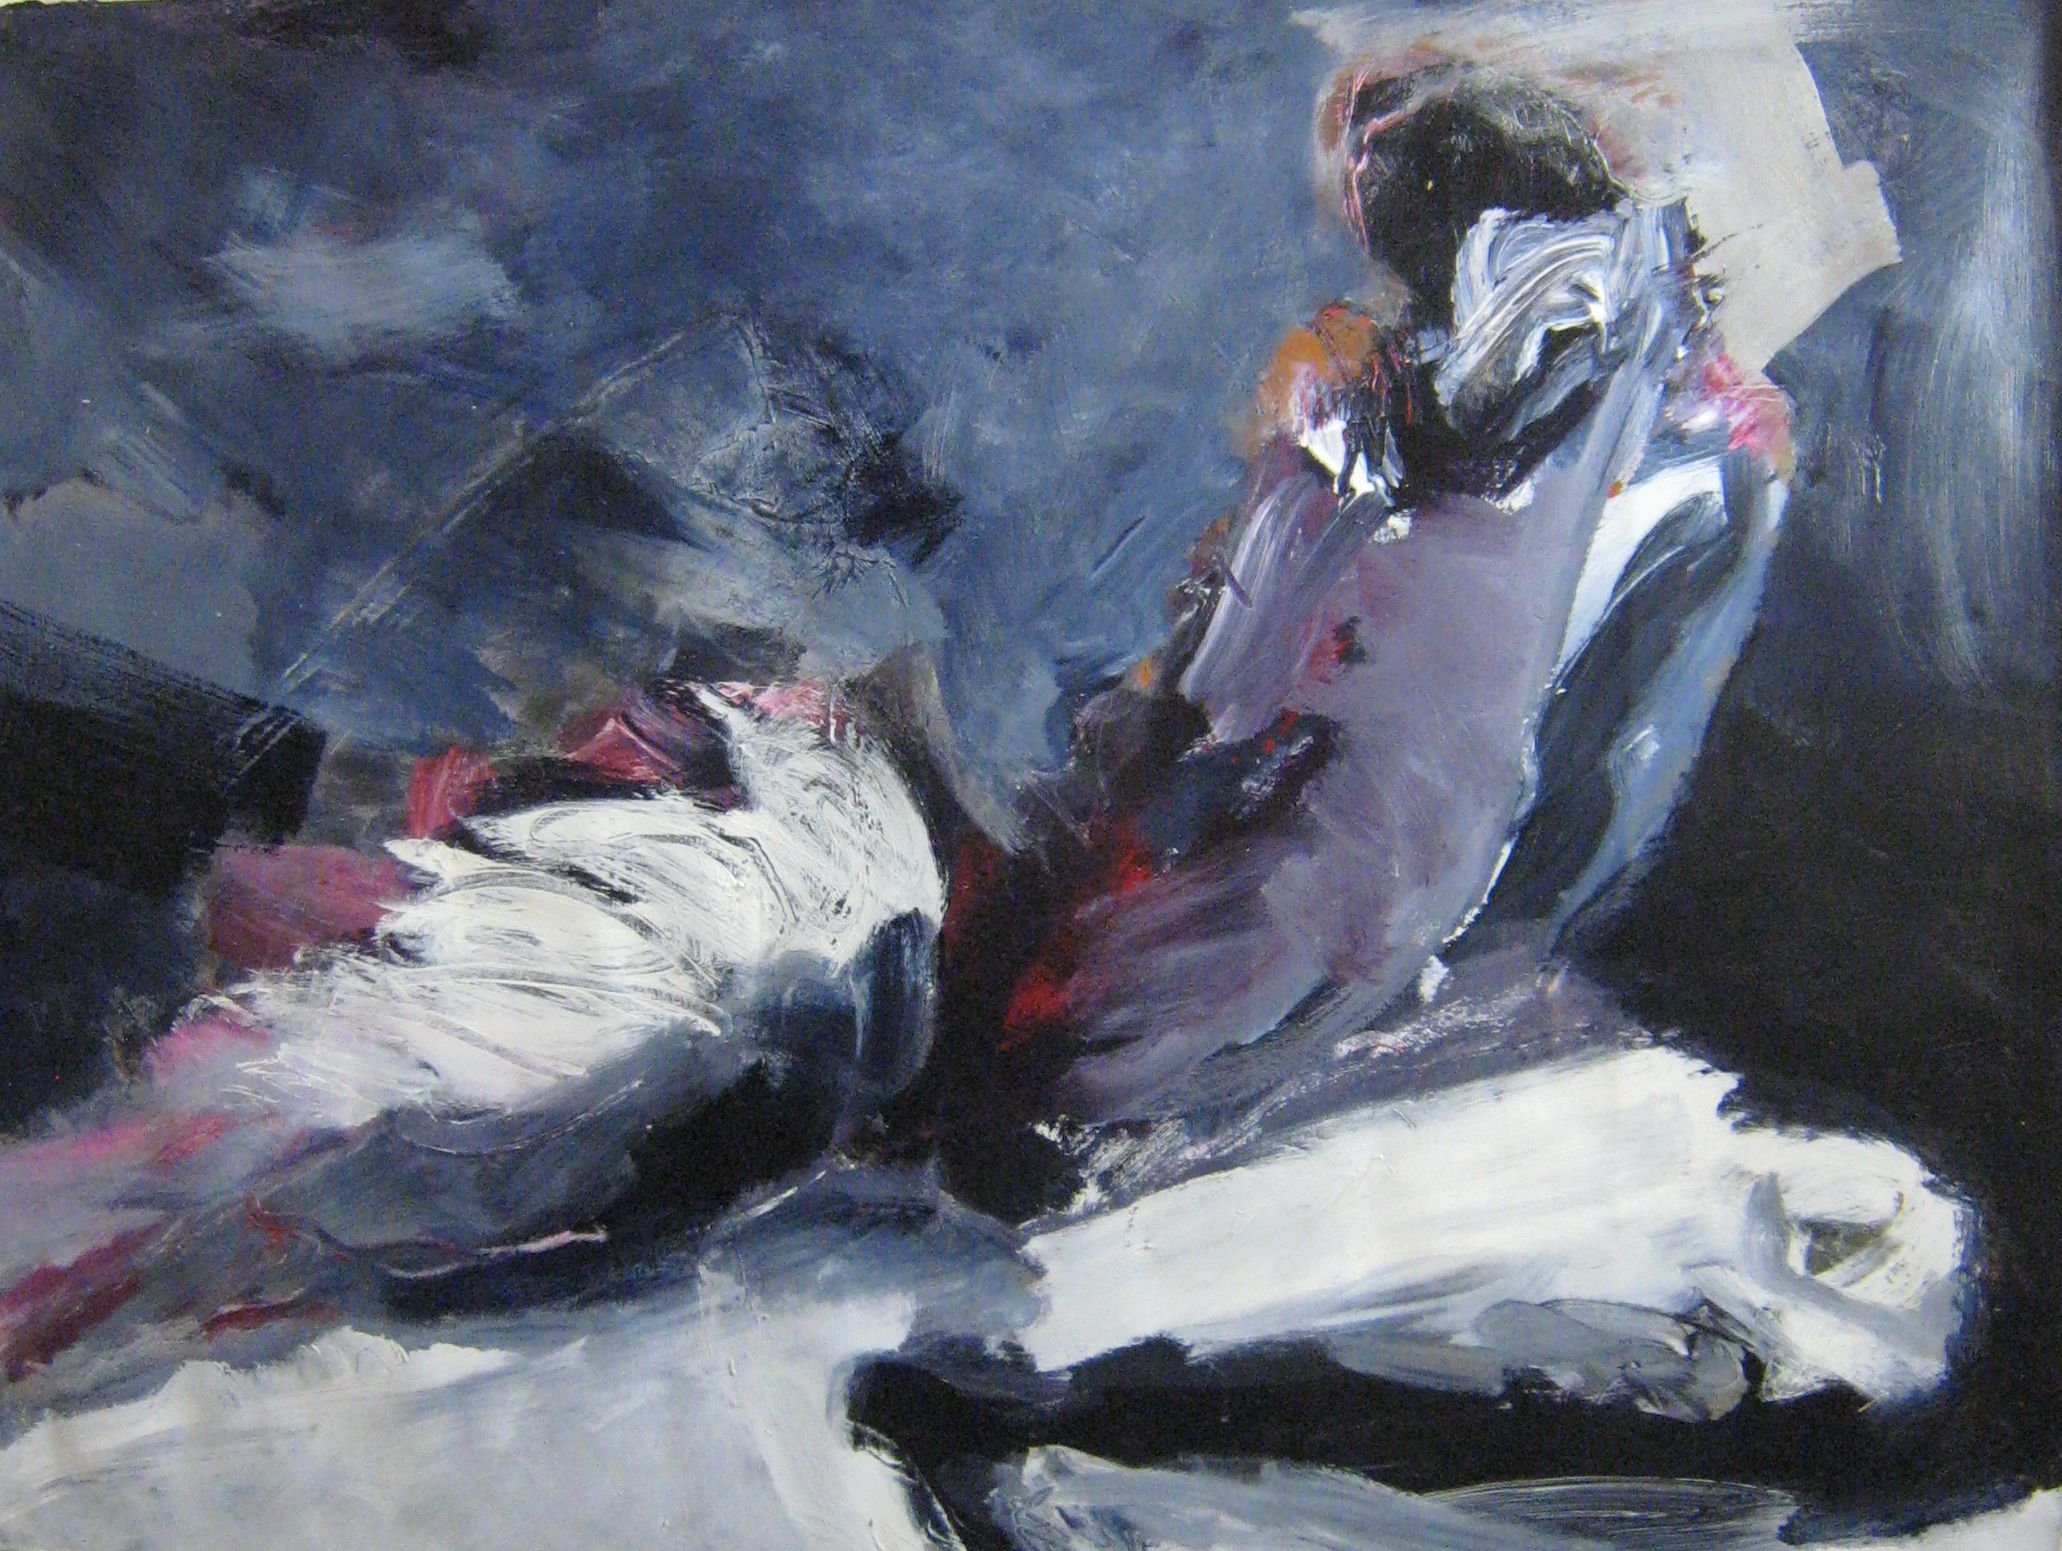 "Relaxation, 45x35"" by Laetitia Bonnici. Purchase from VM Concept in Scottsdale, AZ."